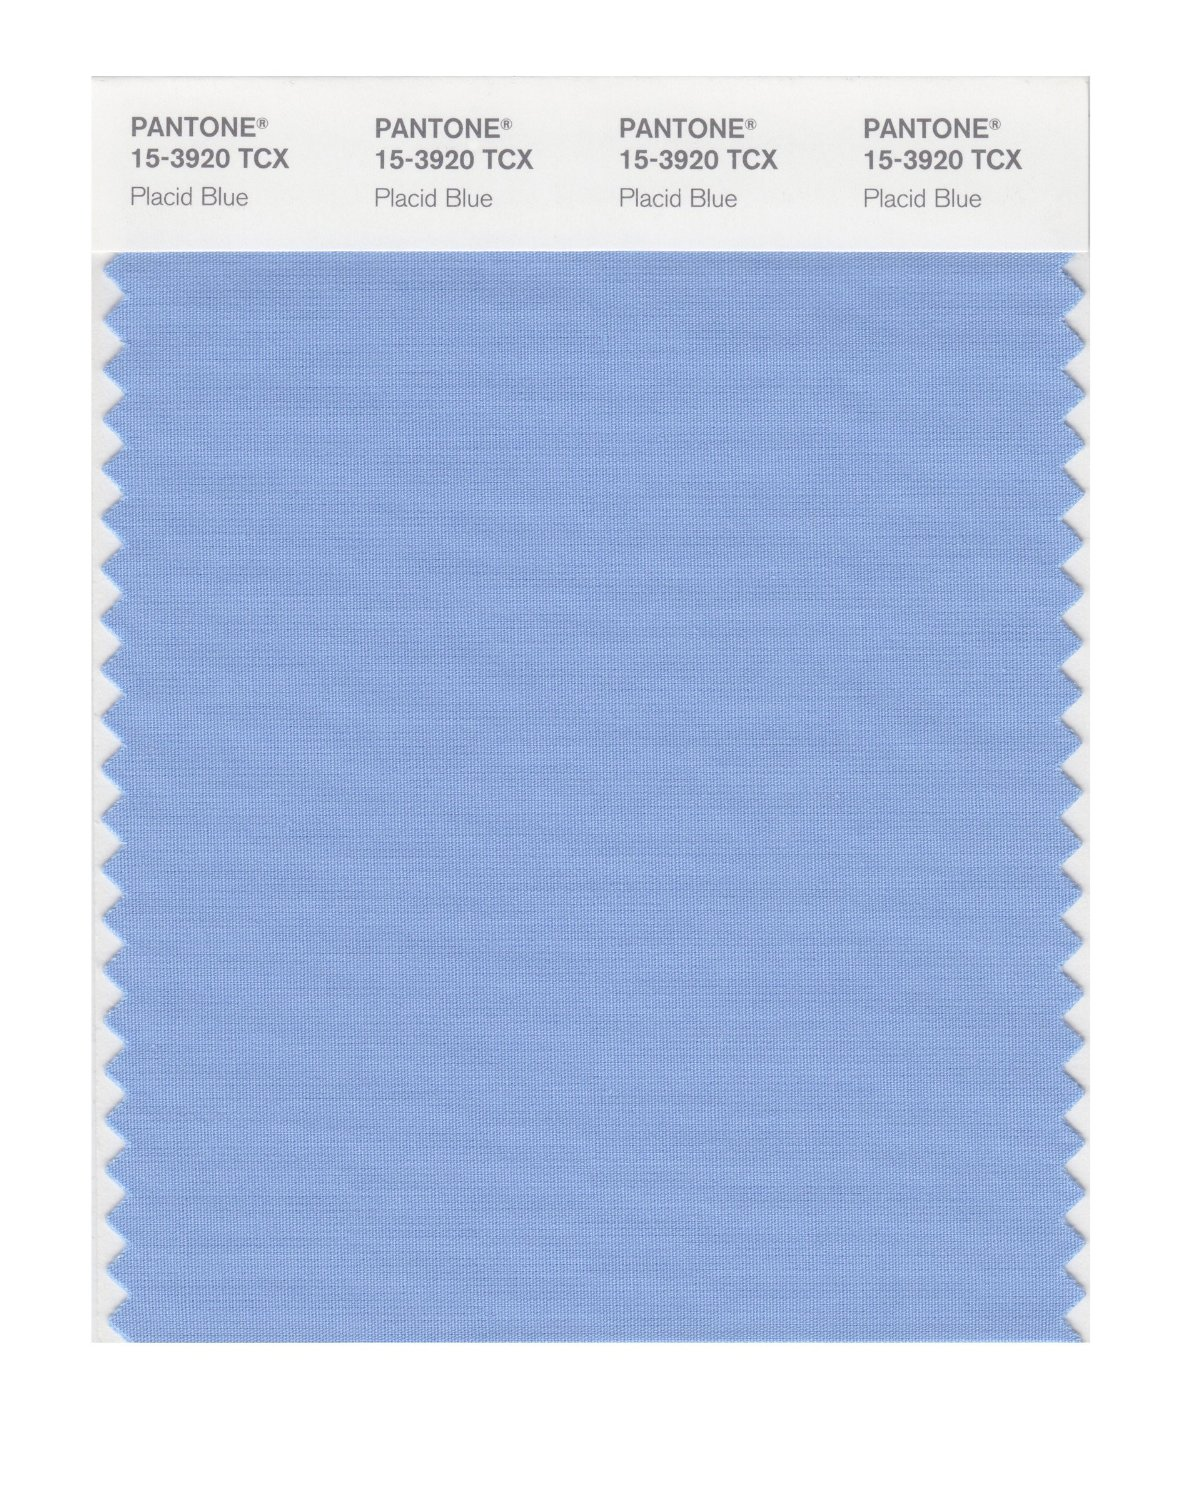 Pantone Smart Swatch 15-3920 Placid Blue